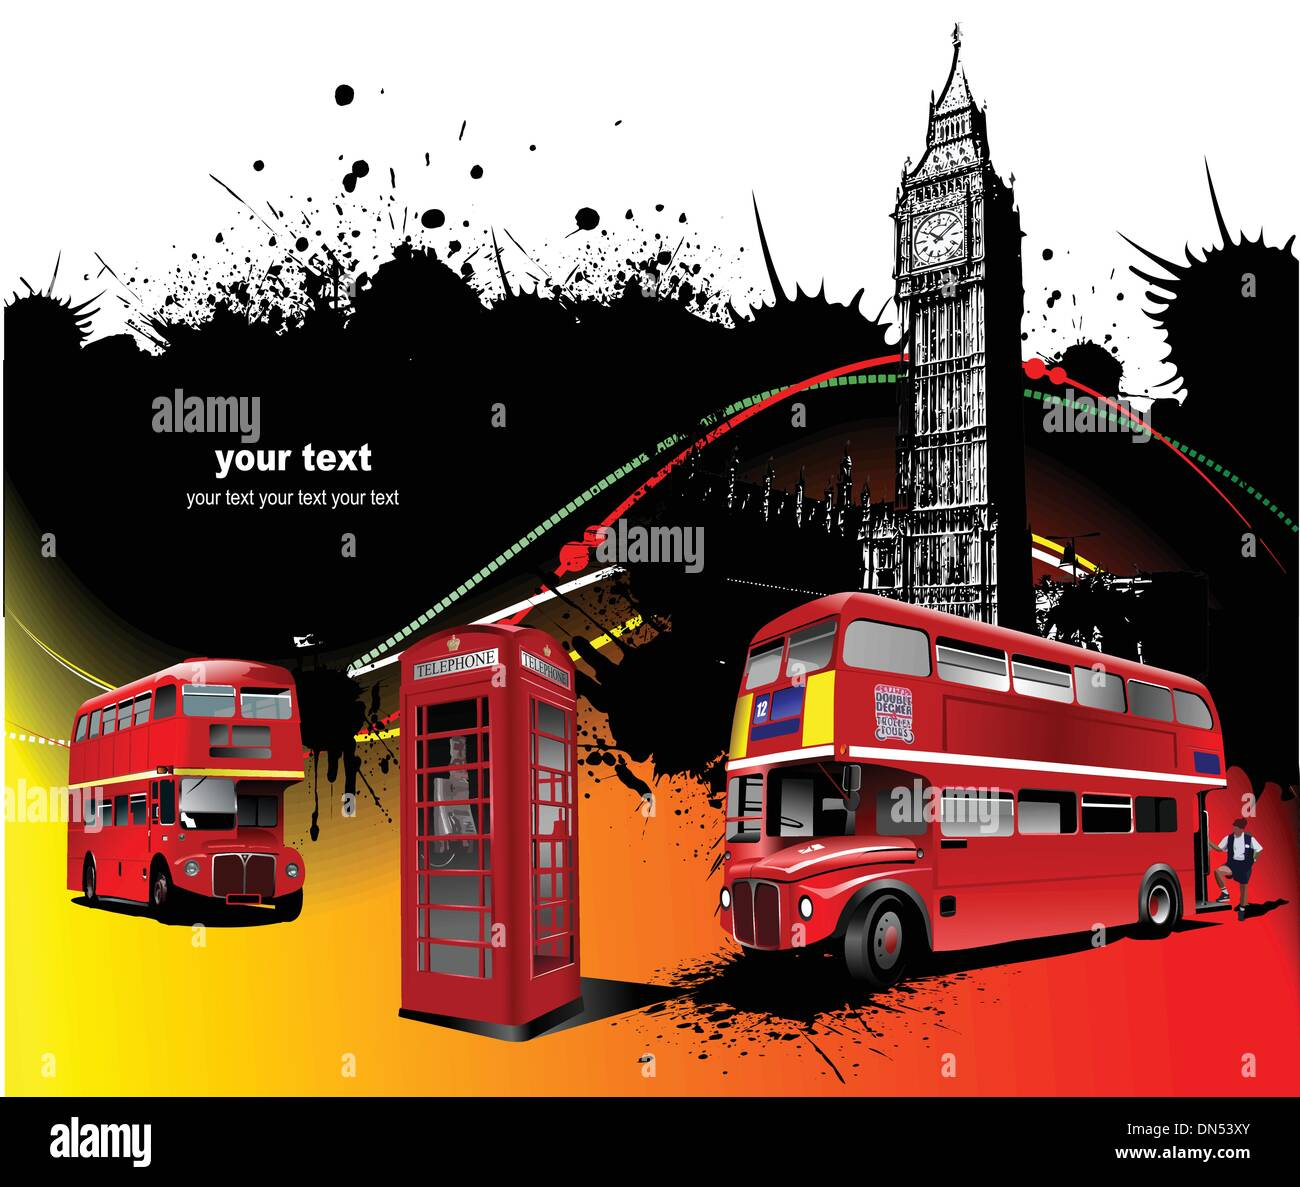 London rarity red images. Vector illustration - Stock Image